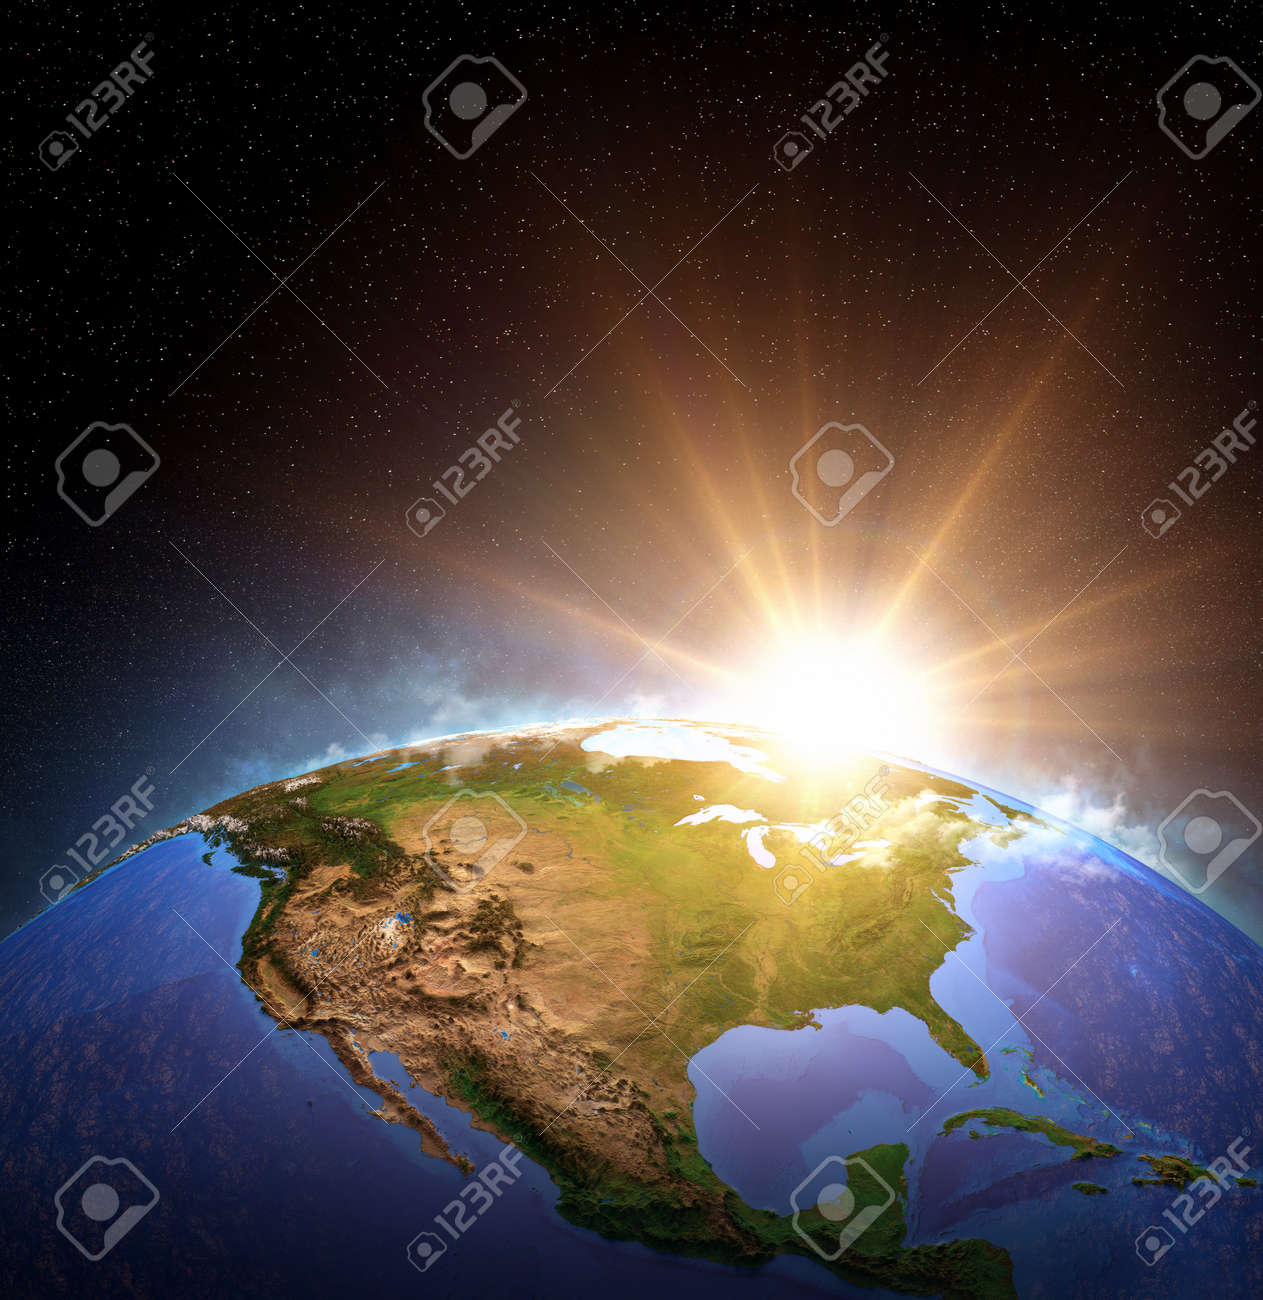 Surface of Planet Earth from space, focused on North America, USA. Sunrise, explosion, impact on the horizon. 3D illustration - 169824955